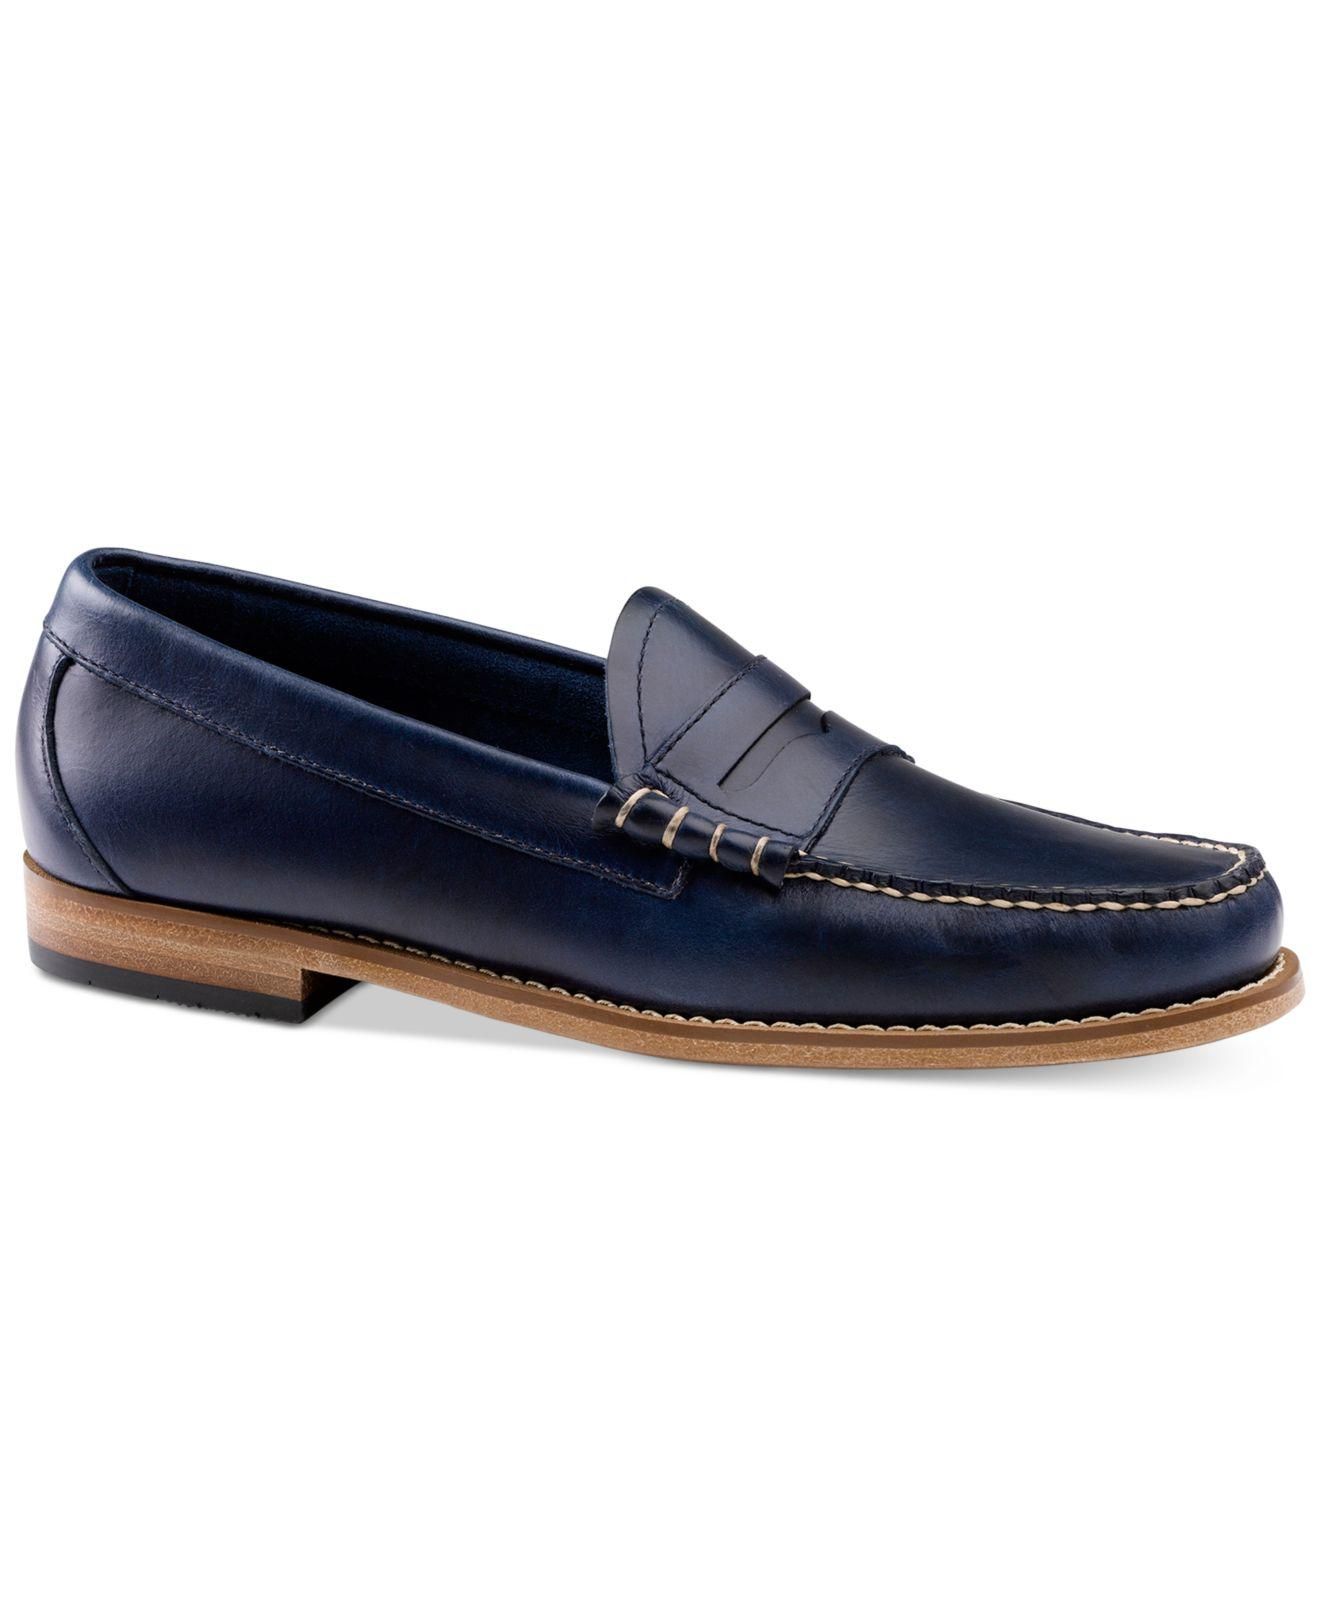 98b8687d867 Lyst - G.H.BASS Men s Larson Loafers in Blue for Men